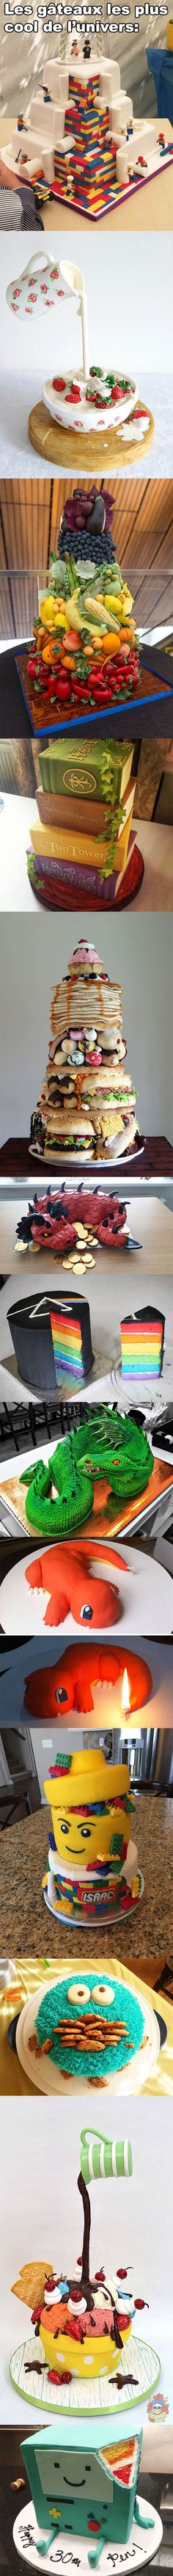 Best cakes ever Beautiful Cakes, Amazing Cakes, Potato Girl, Best Cake Ever, Gravity Cake, Super Cool Stuff, Image Fun, Quites, Culinary Arts